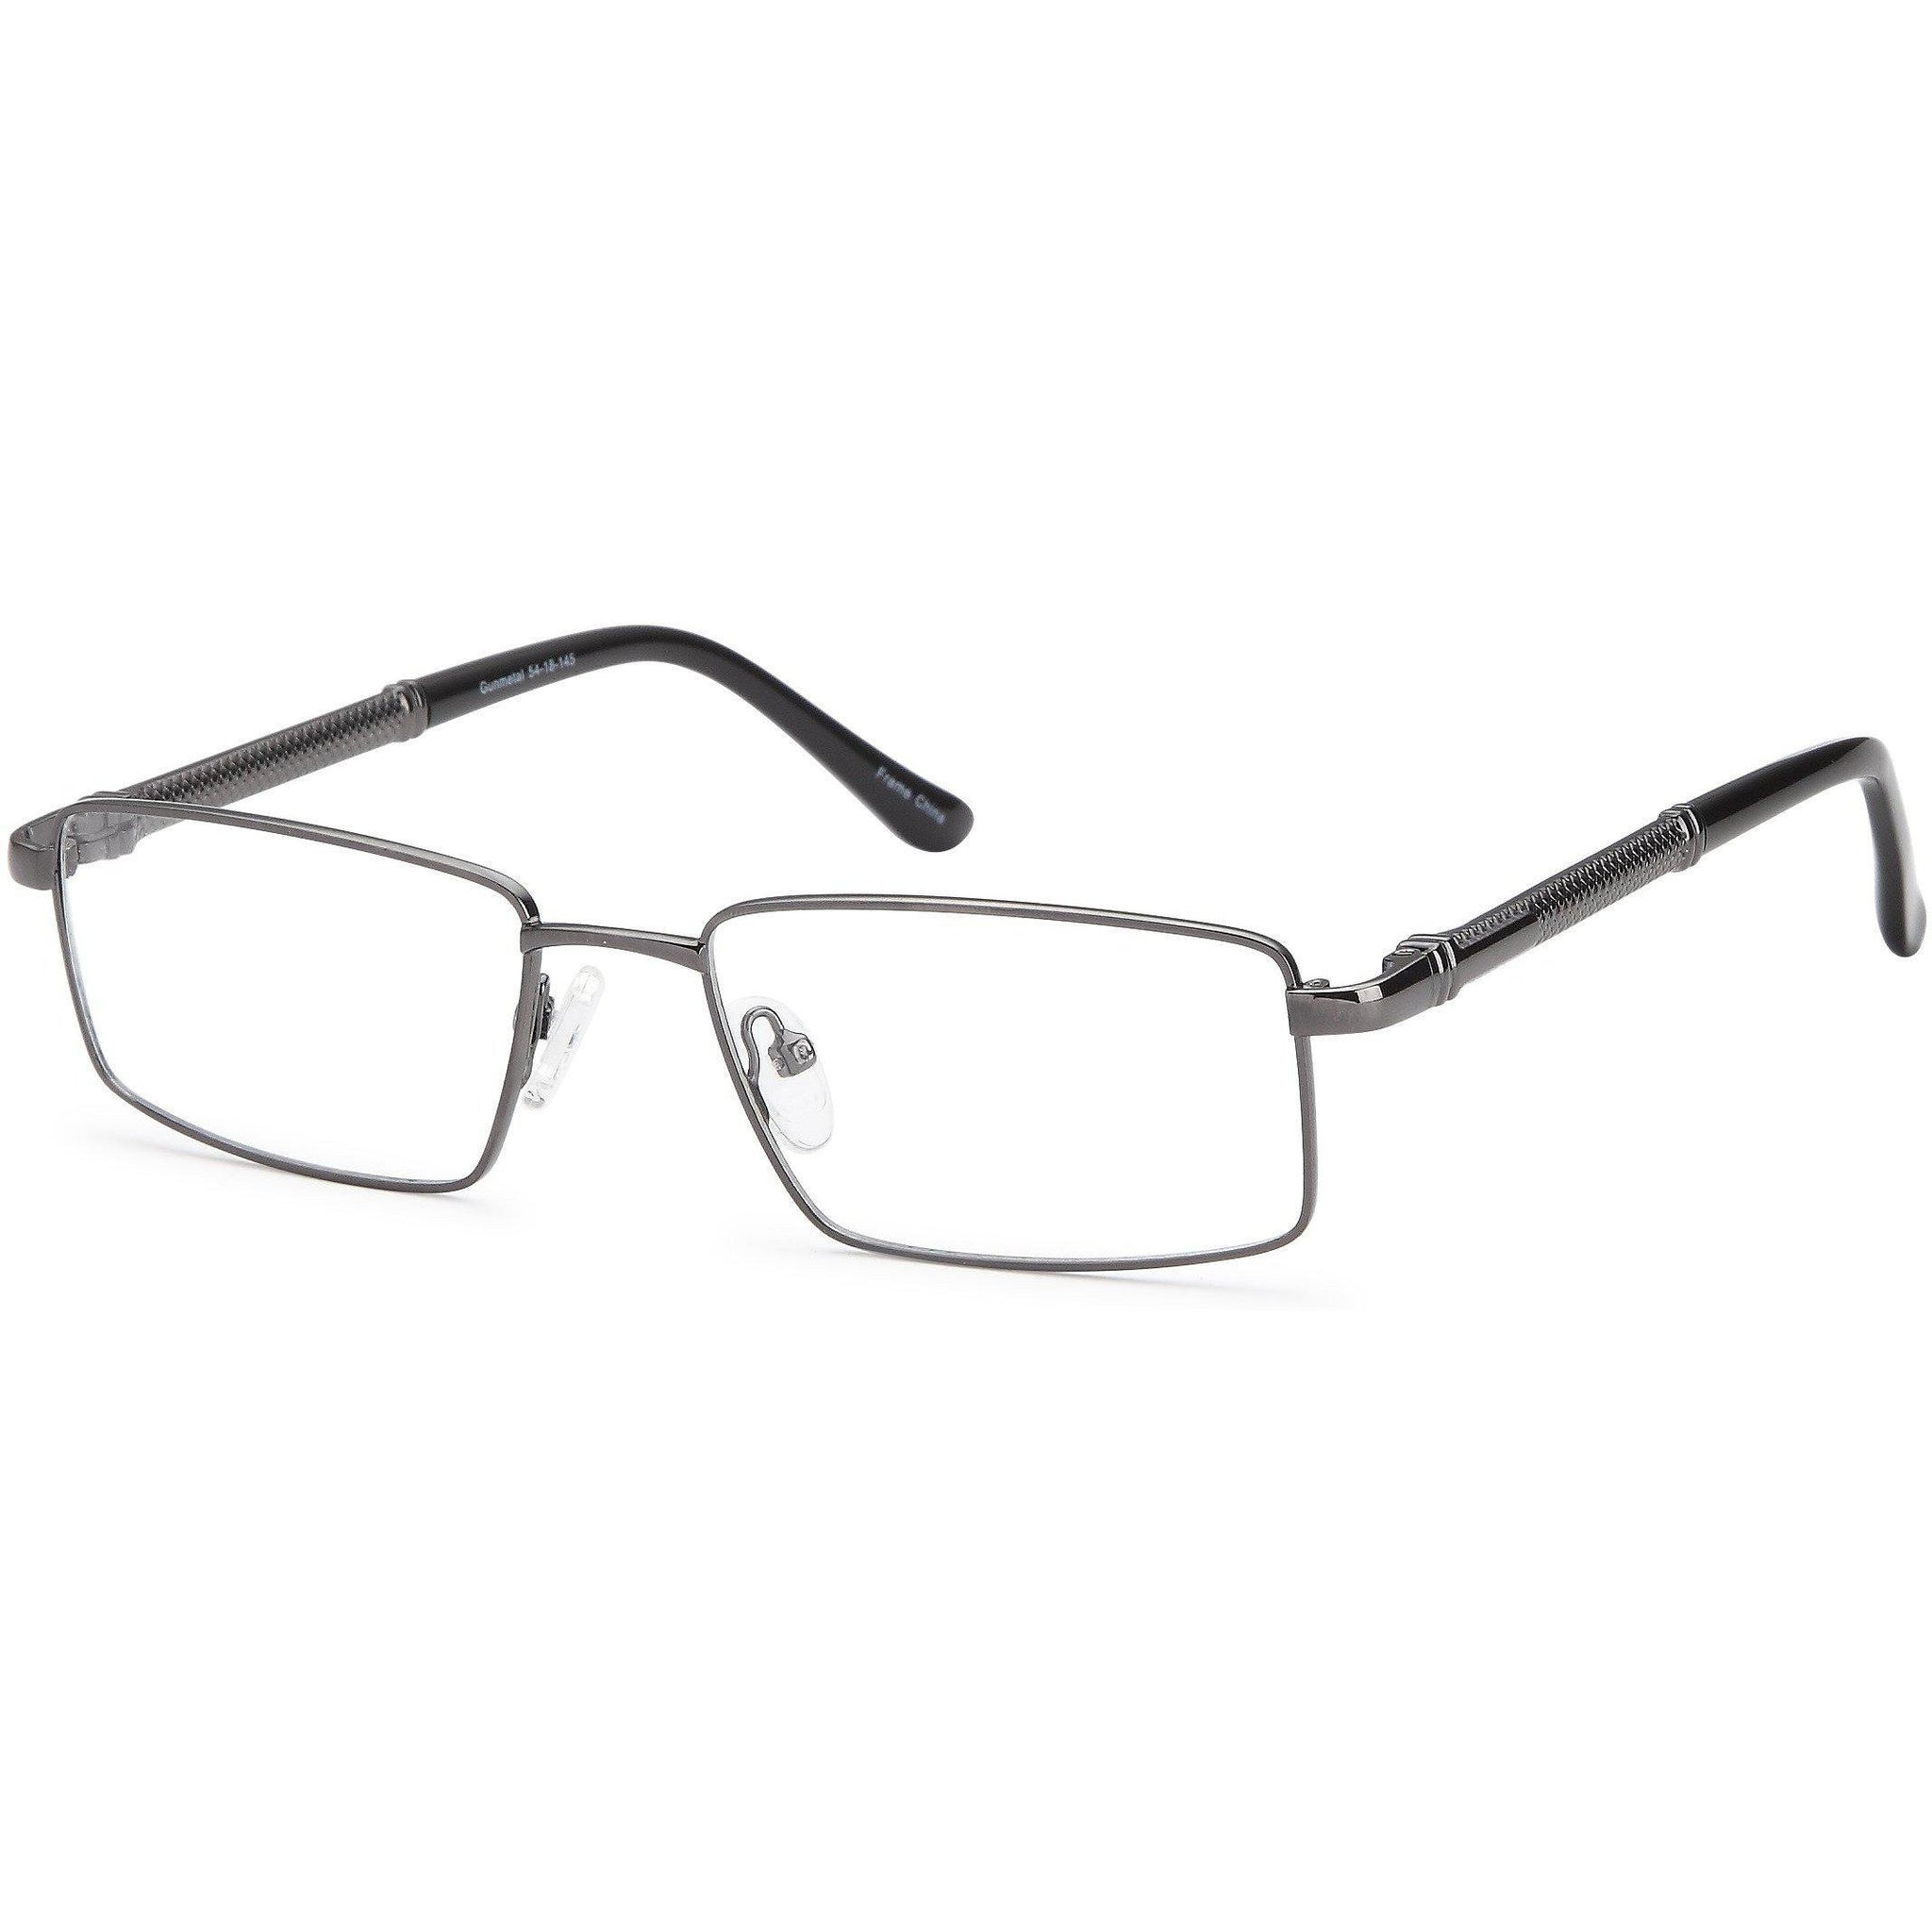 Di Caprio Prescription Glasses DC 150 Eyeglasses Frame - timetoshade